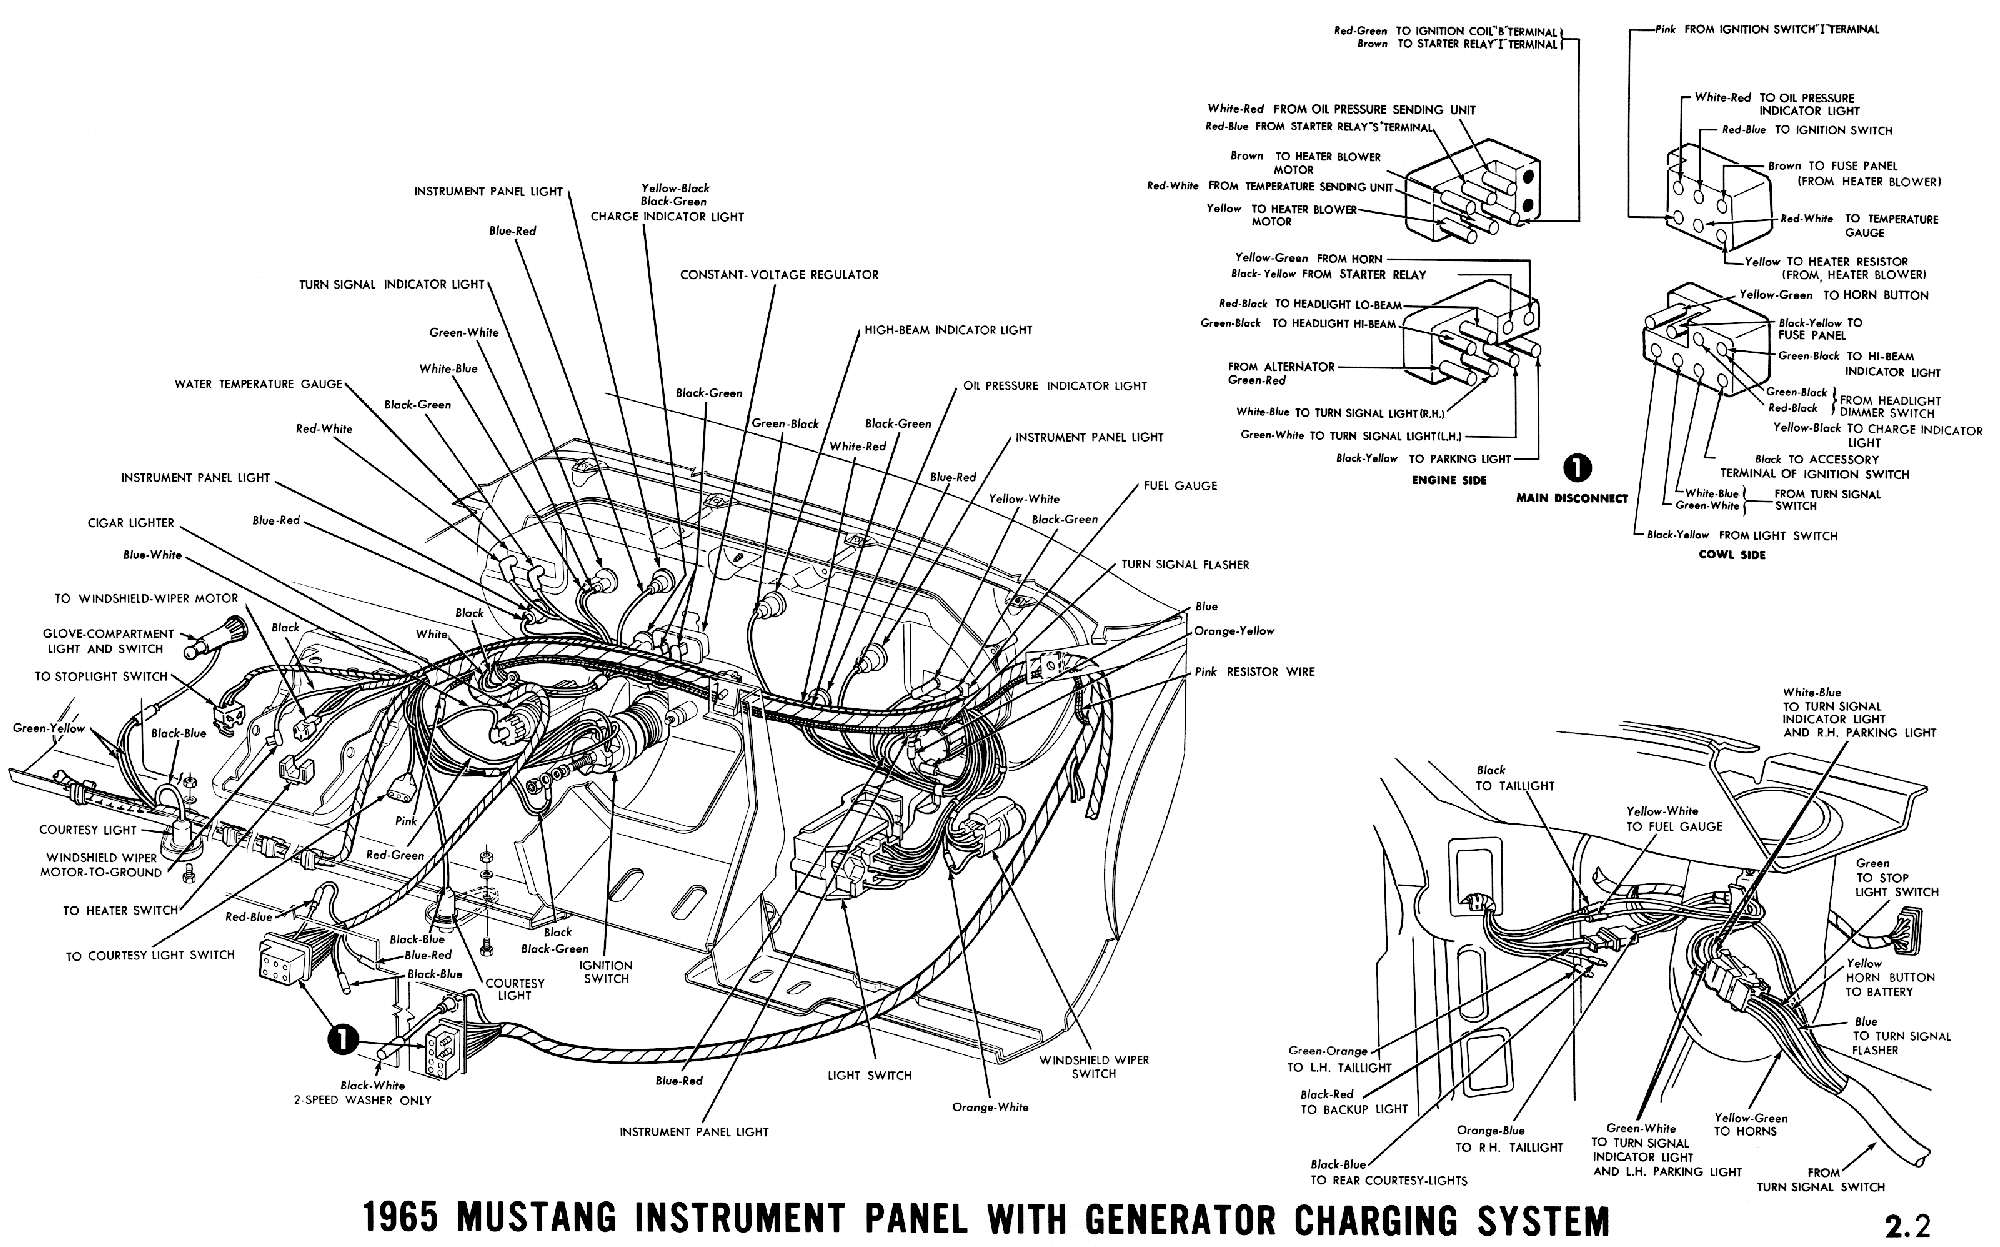 hight resolution of 1965 mustang wiring diagrams average joe restoration 65 mustang firing order 65 mustang wire diagram